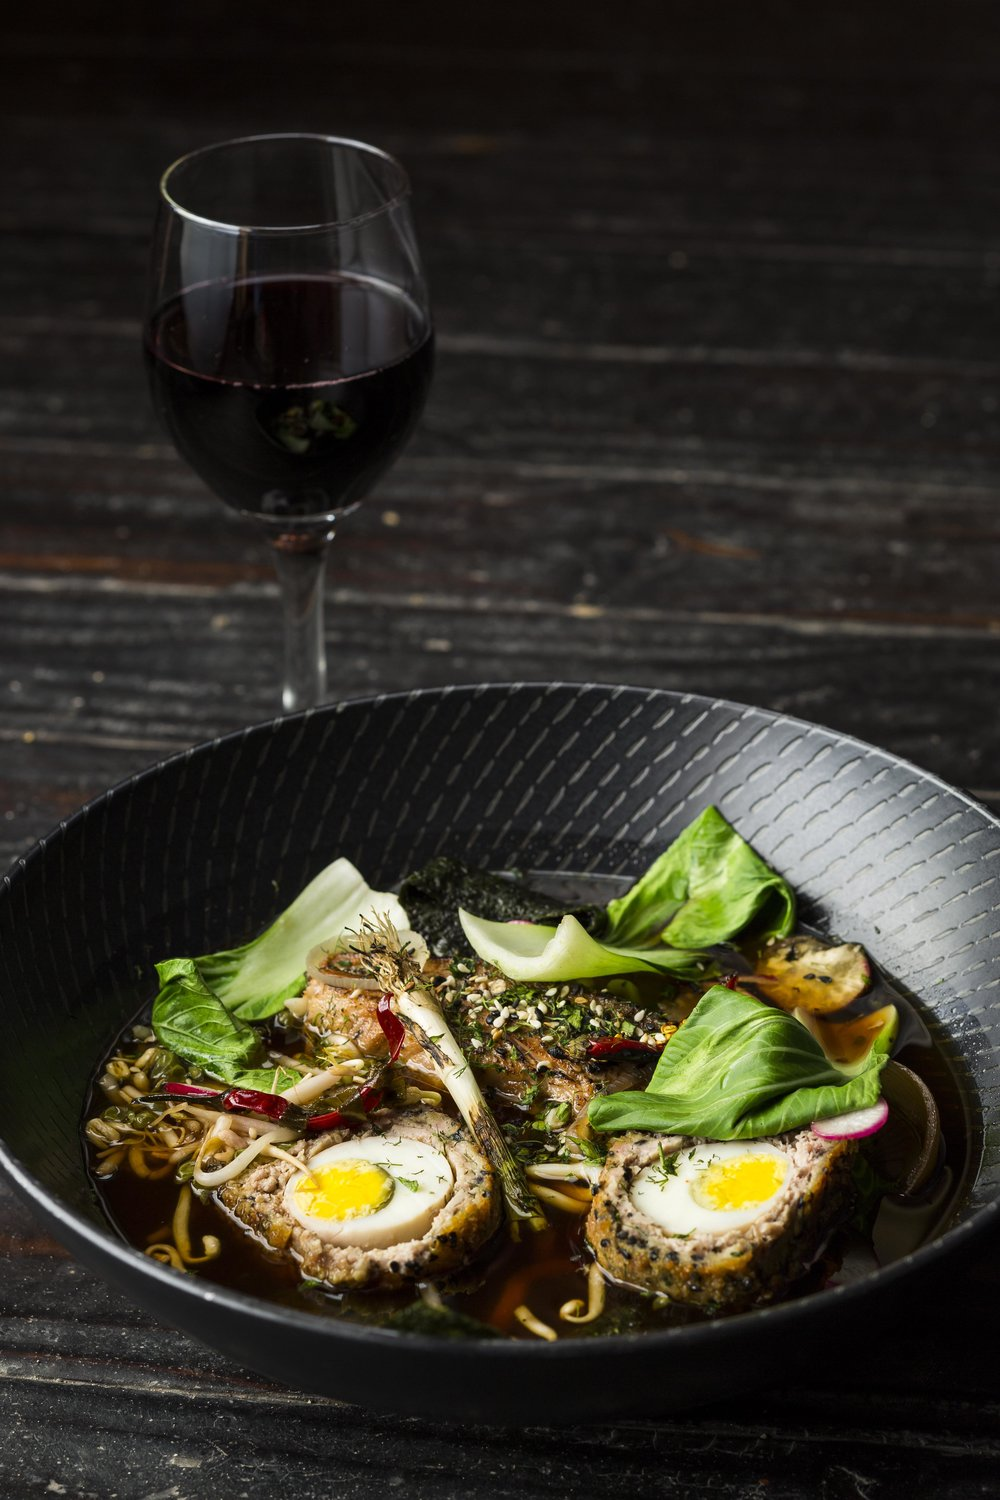 Rock 'n' Roll Ramen - Pork belly ramen with a soft-boiled scotch egg, udon noodles, spring onion, toasted sesame, Chinese leaf & bean sprouts in a lemongrass broth. Image by Michael le Grange.